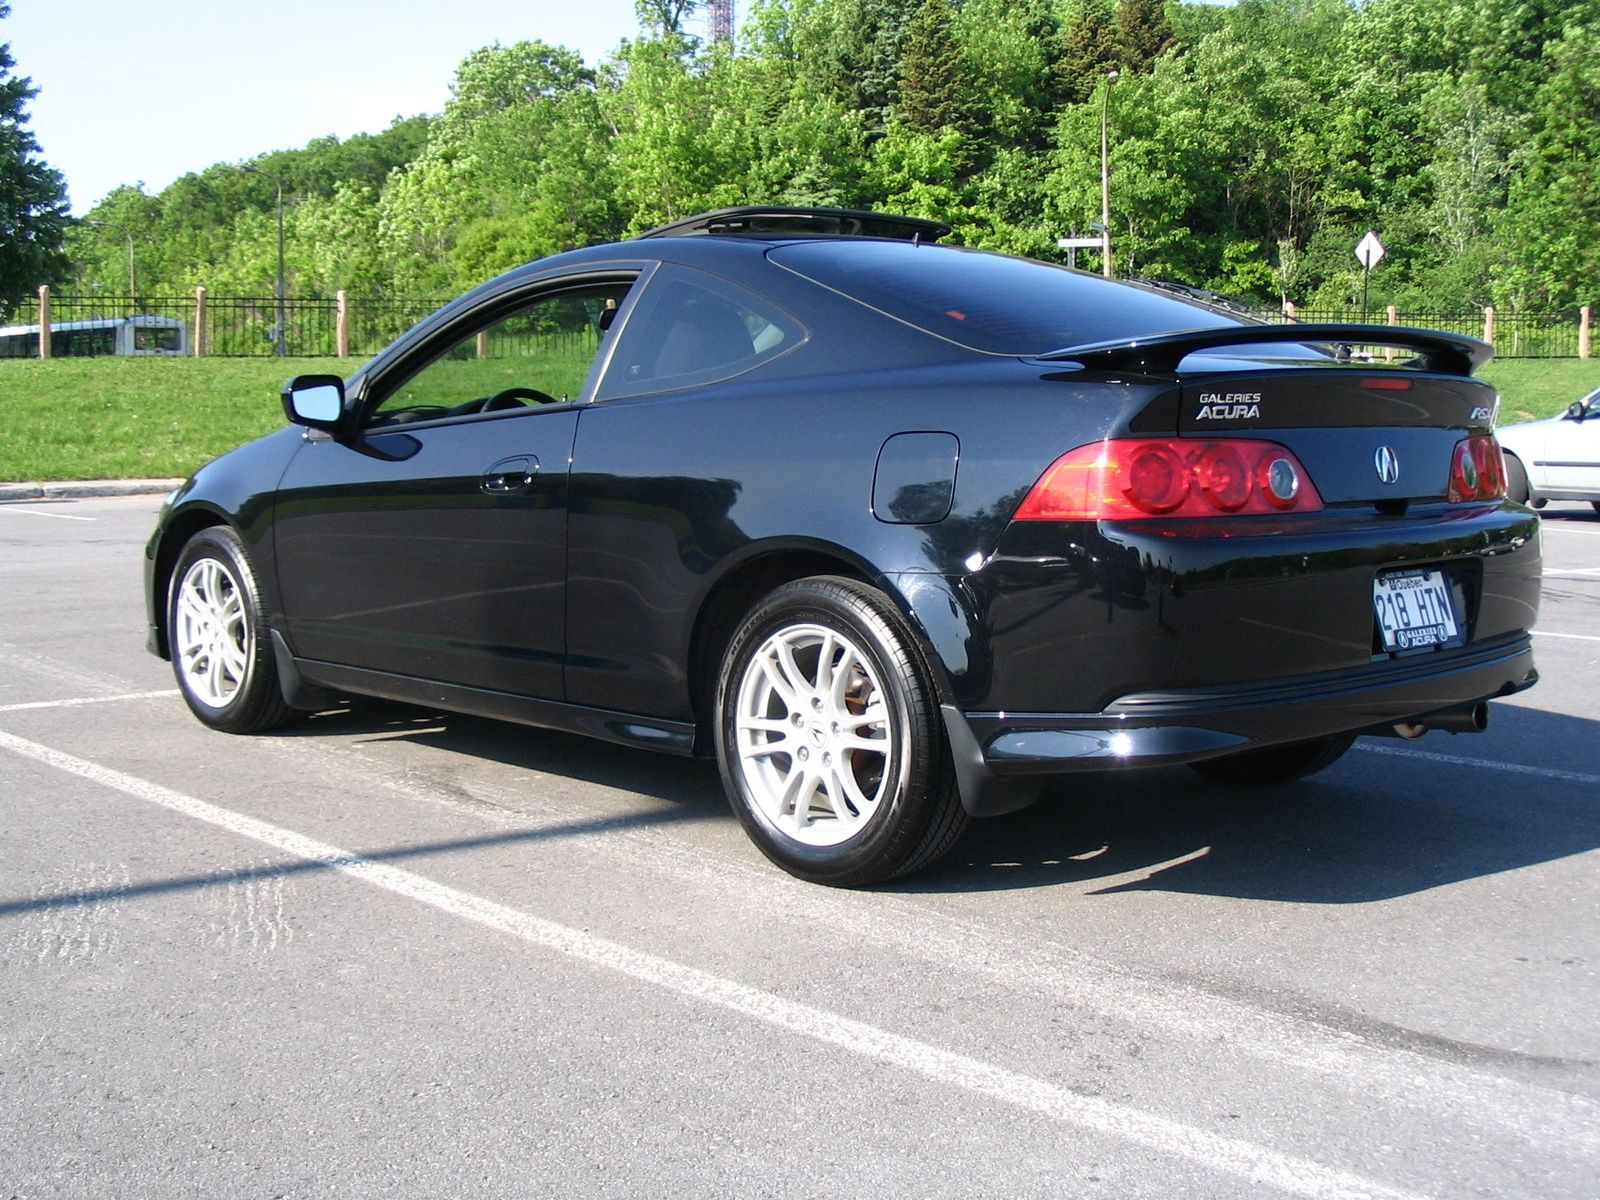 2005 Acura Rsx Other Pictures Cargurus Acura Rsx Acura Car Inspiration